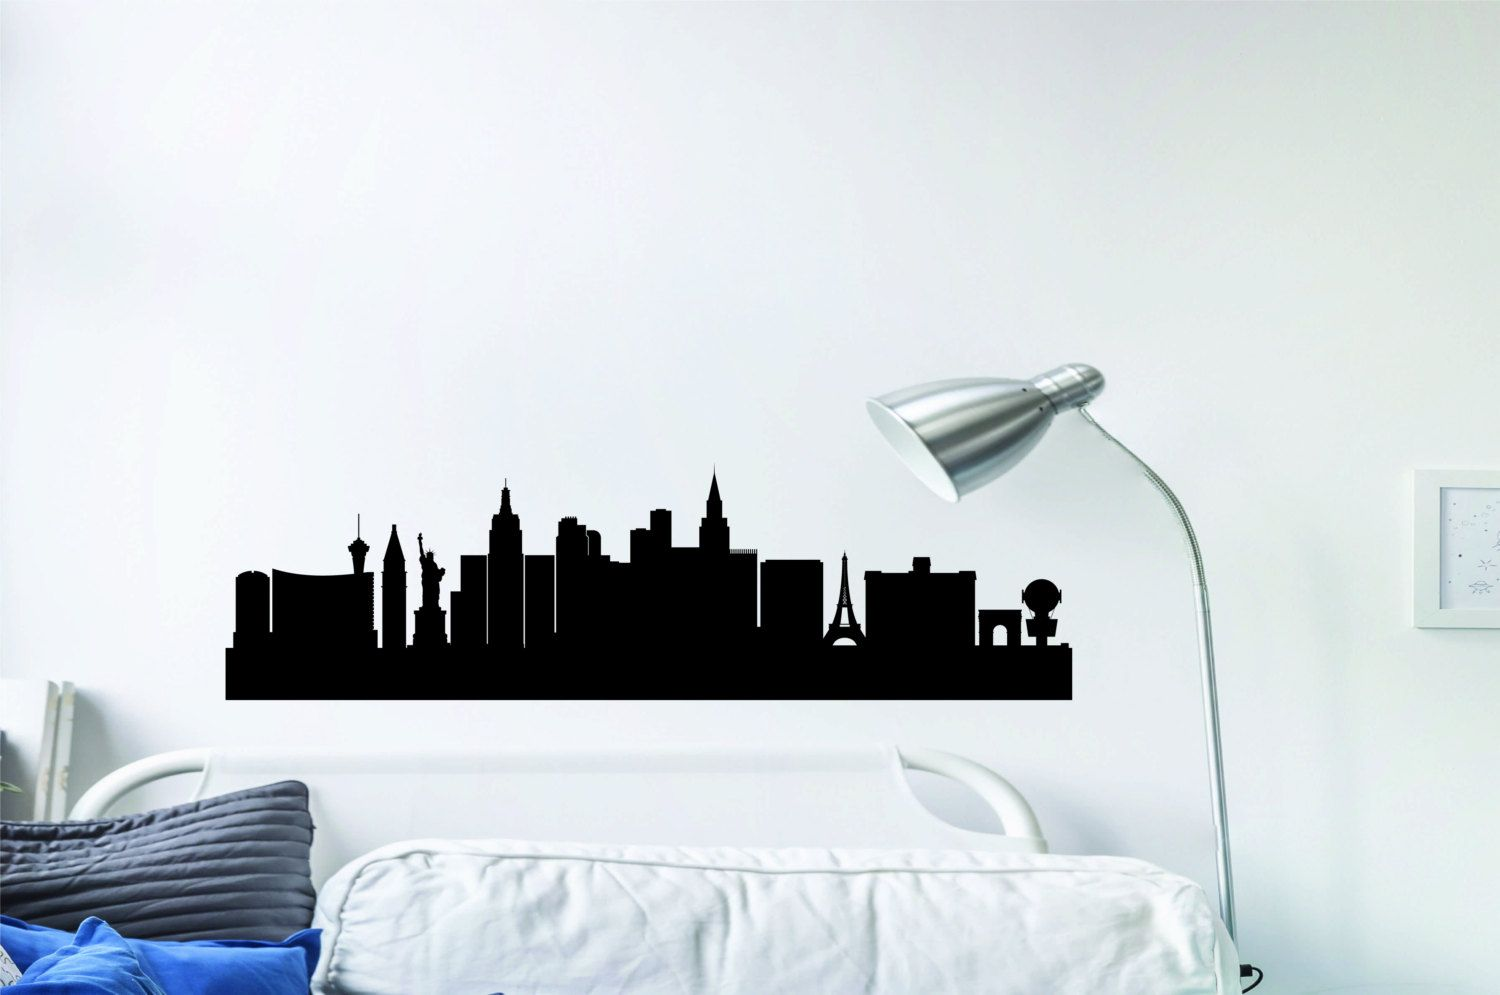 Las vegas city skyline wall decal city horizon silhouette cityscape wall decal custom city horizon wall sticker city skyline sticker